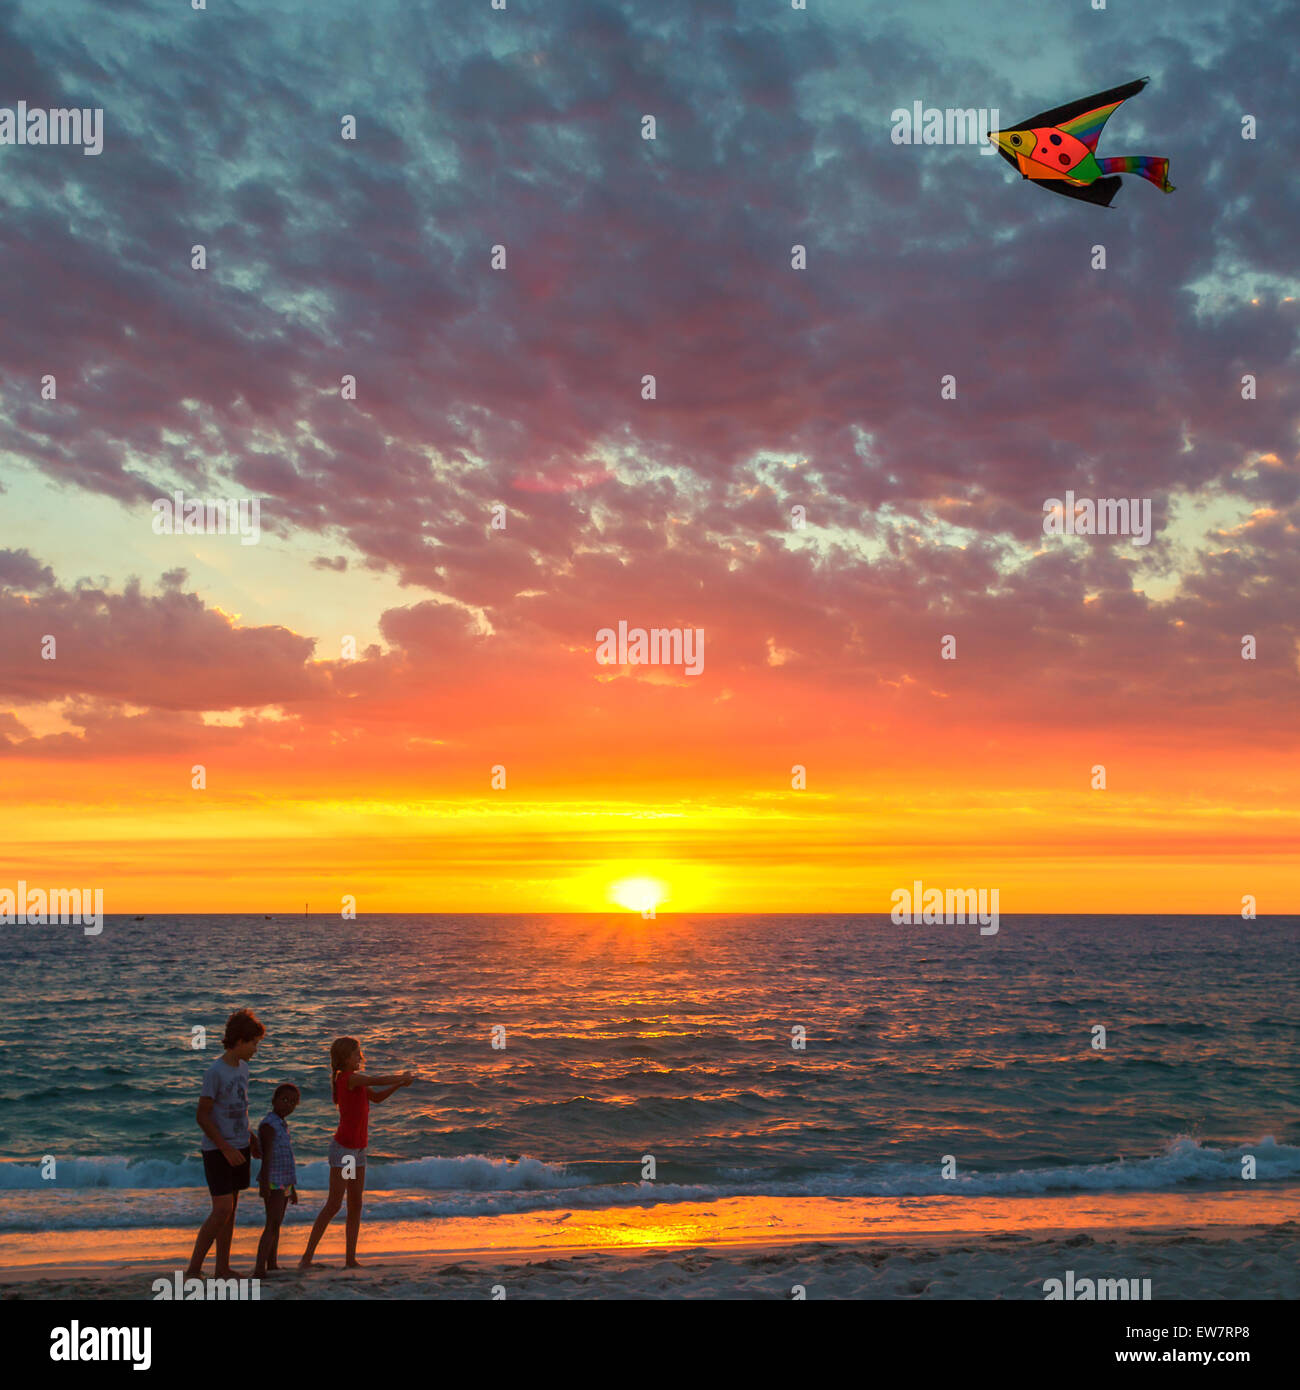 Three children flying a kite on beach at sunset, Hillarys, Joondalup, Australia - Stock Image